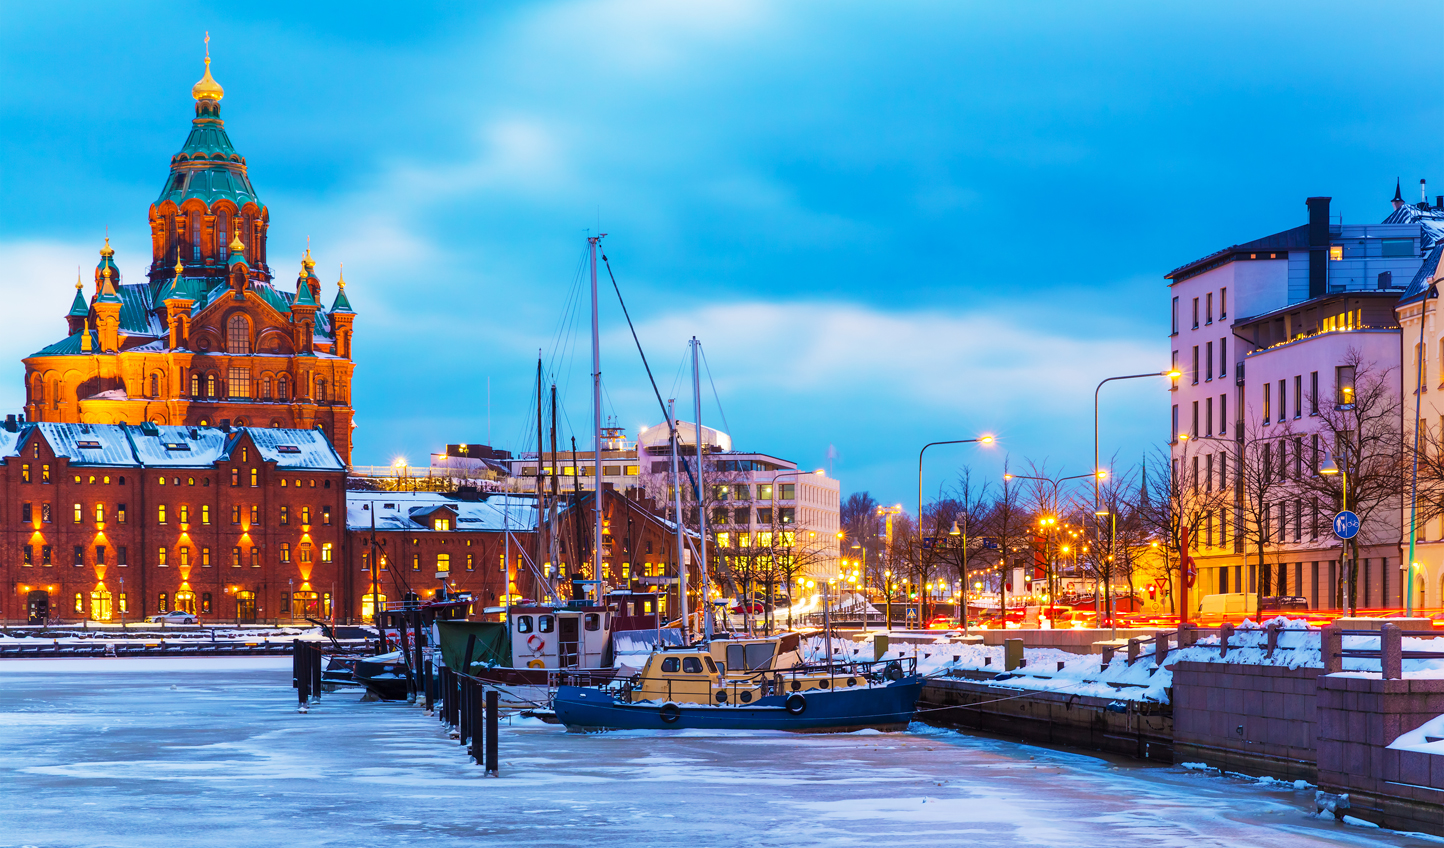 Helsinki is all the more beautiful in the winter months